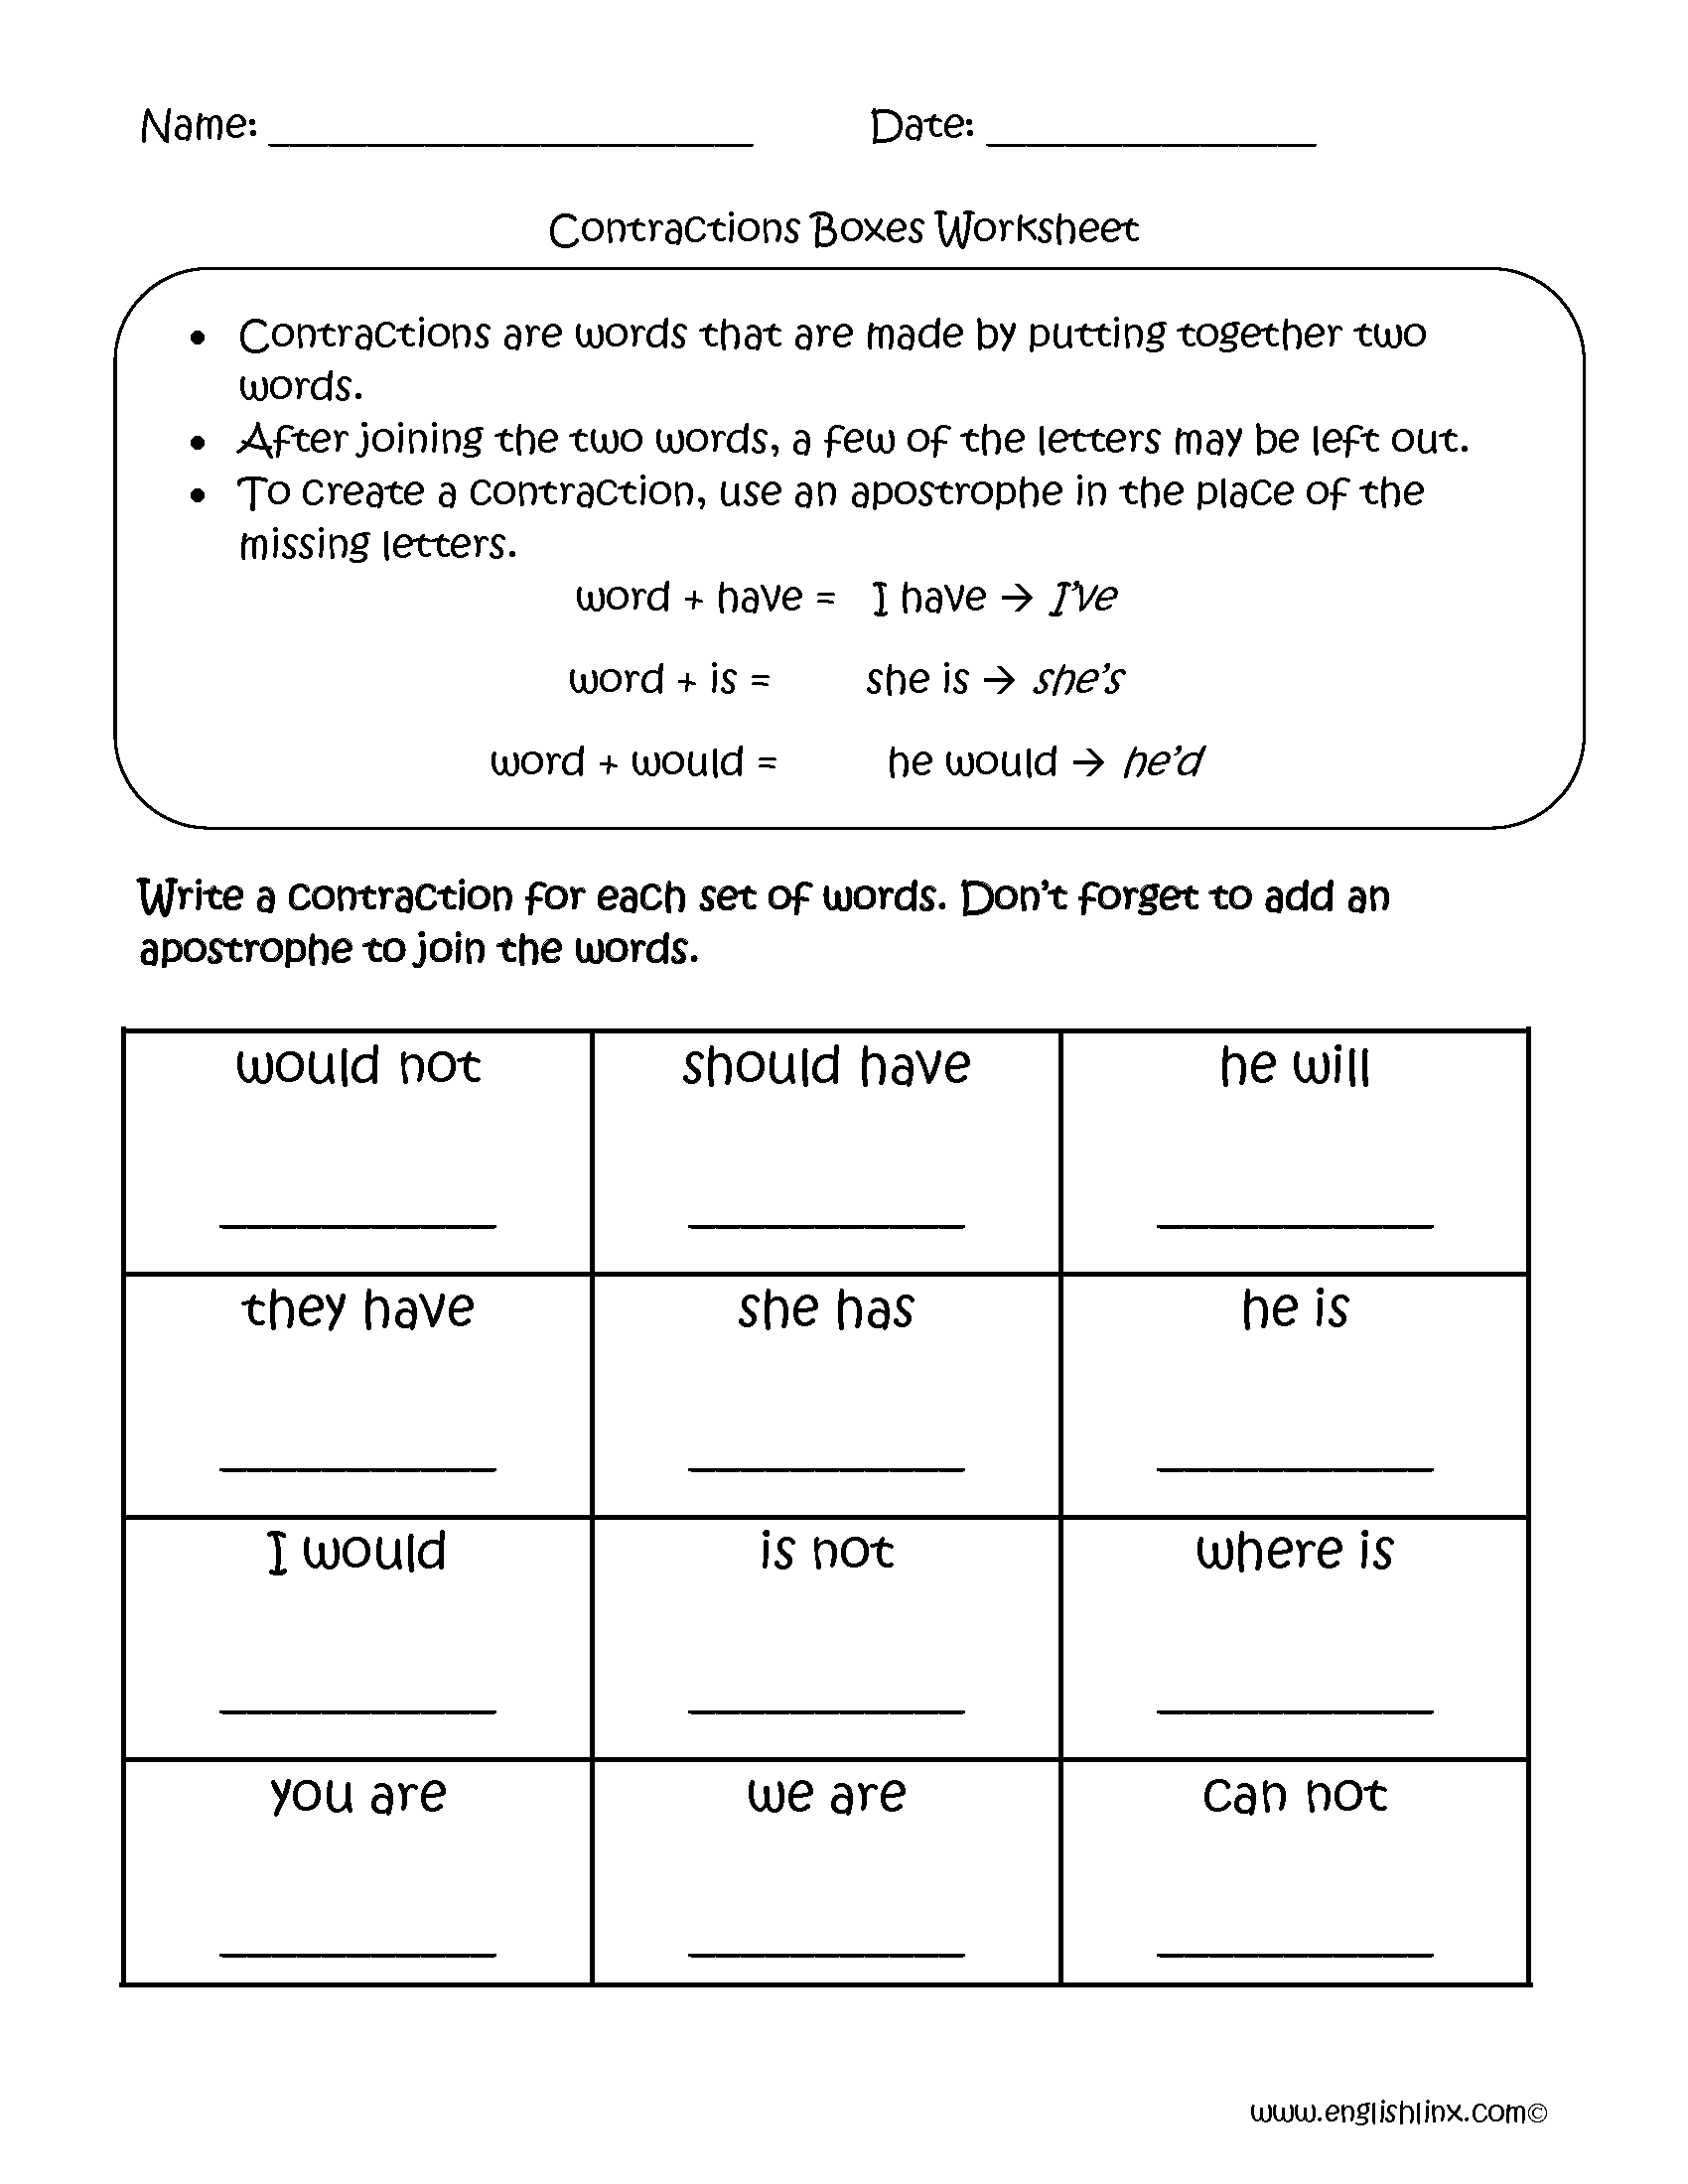 Contractions Boxes Worksheet